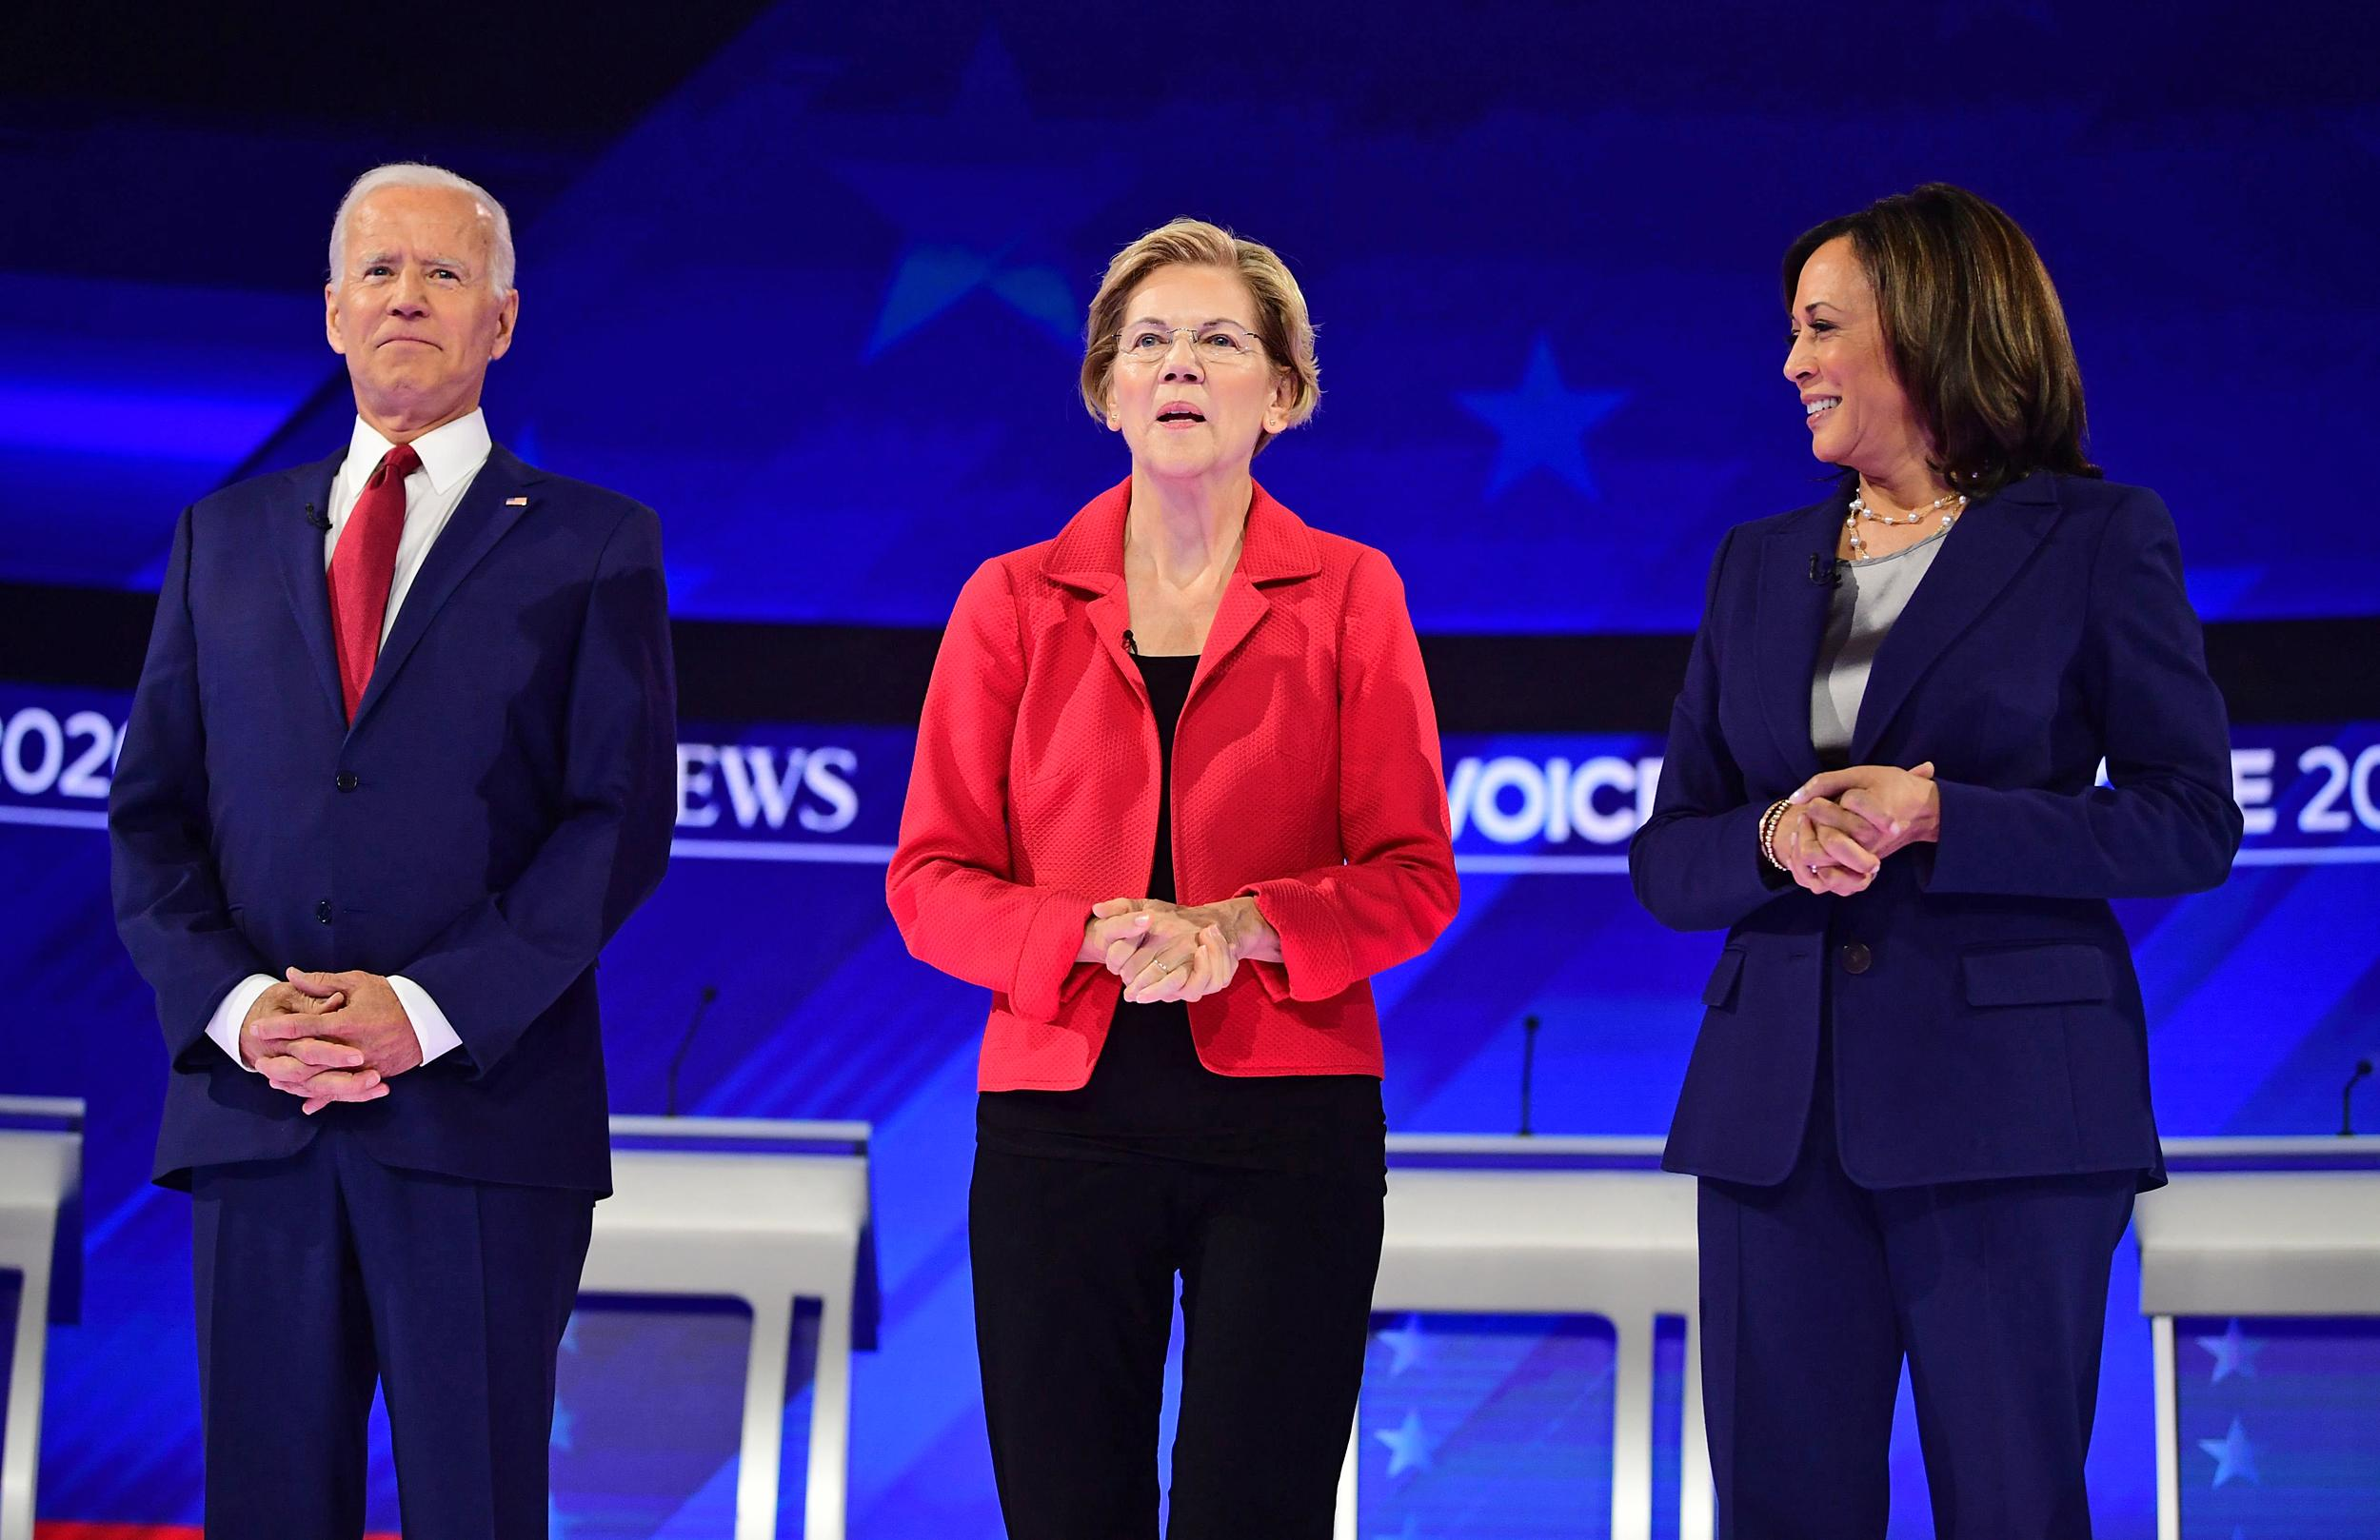 For Biden VP, Black Democrats are torn between Harris and Warren